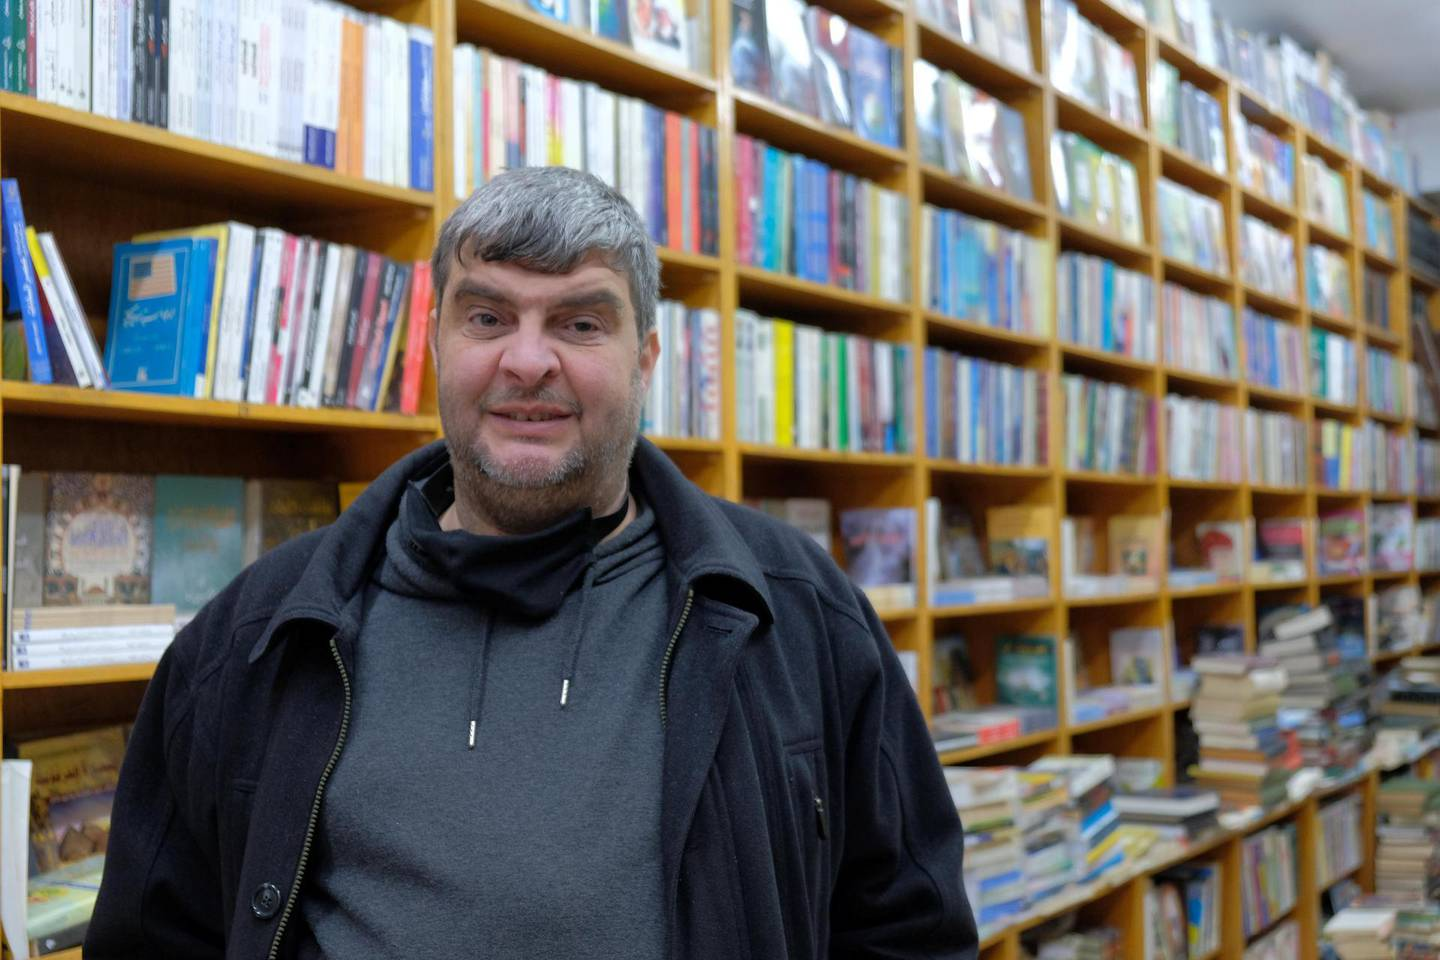 Raed Al Muhtaseb stands in his bookshop in downtown Amman. Amy McConaghy / The National